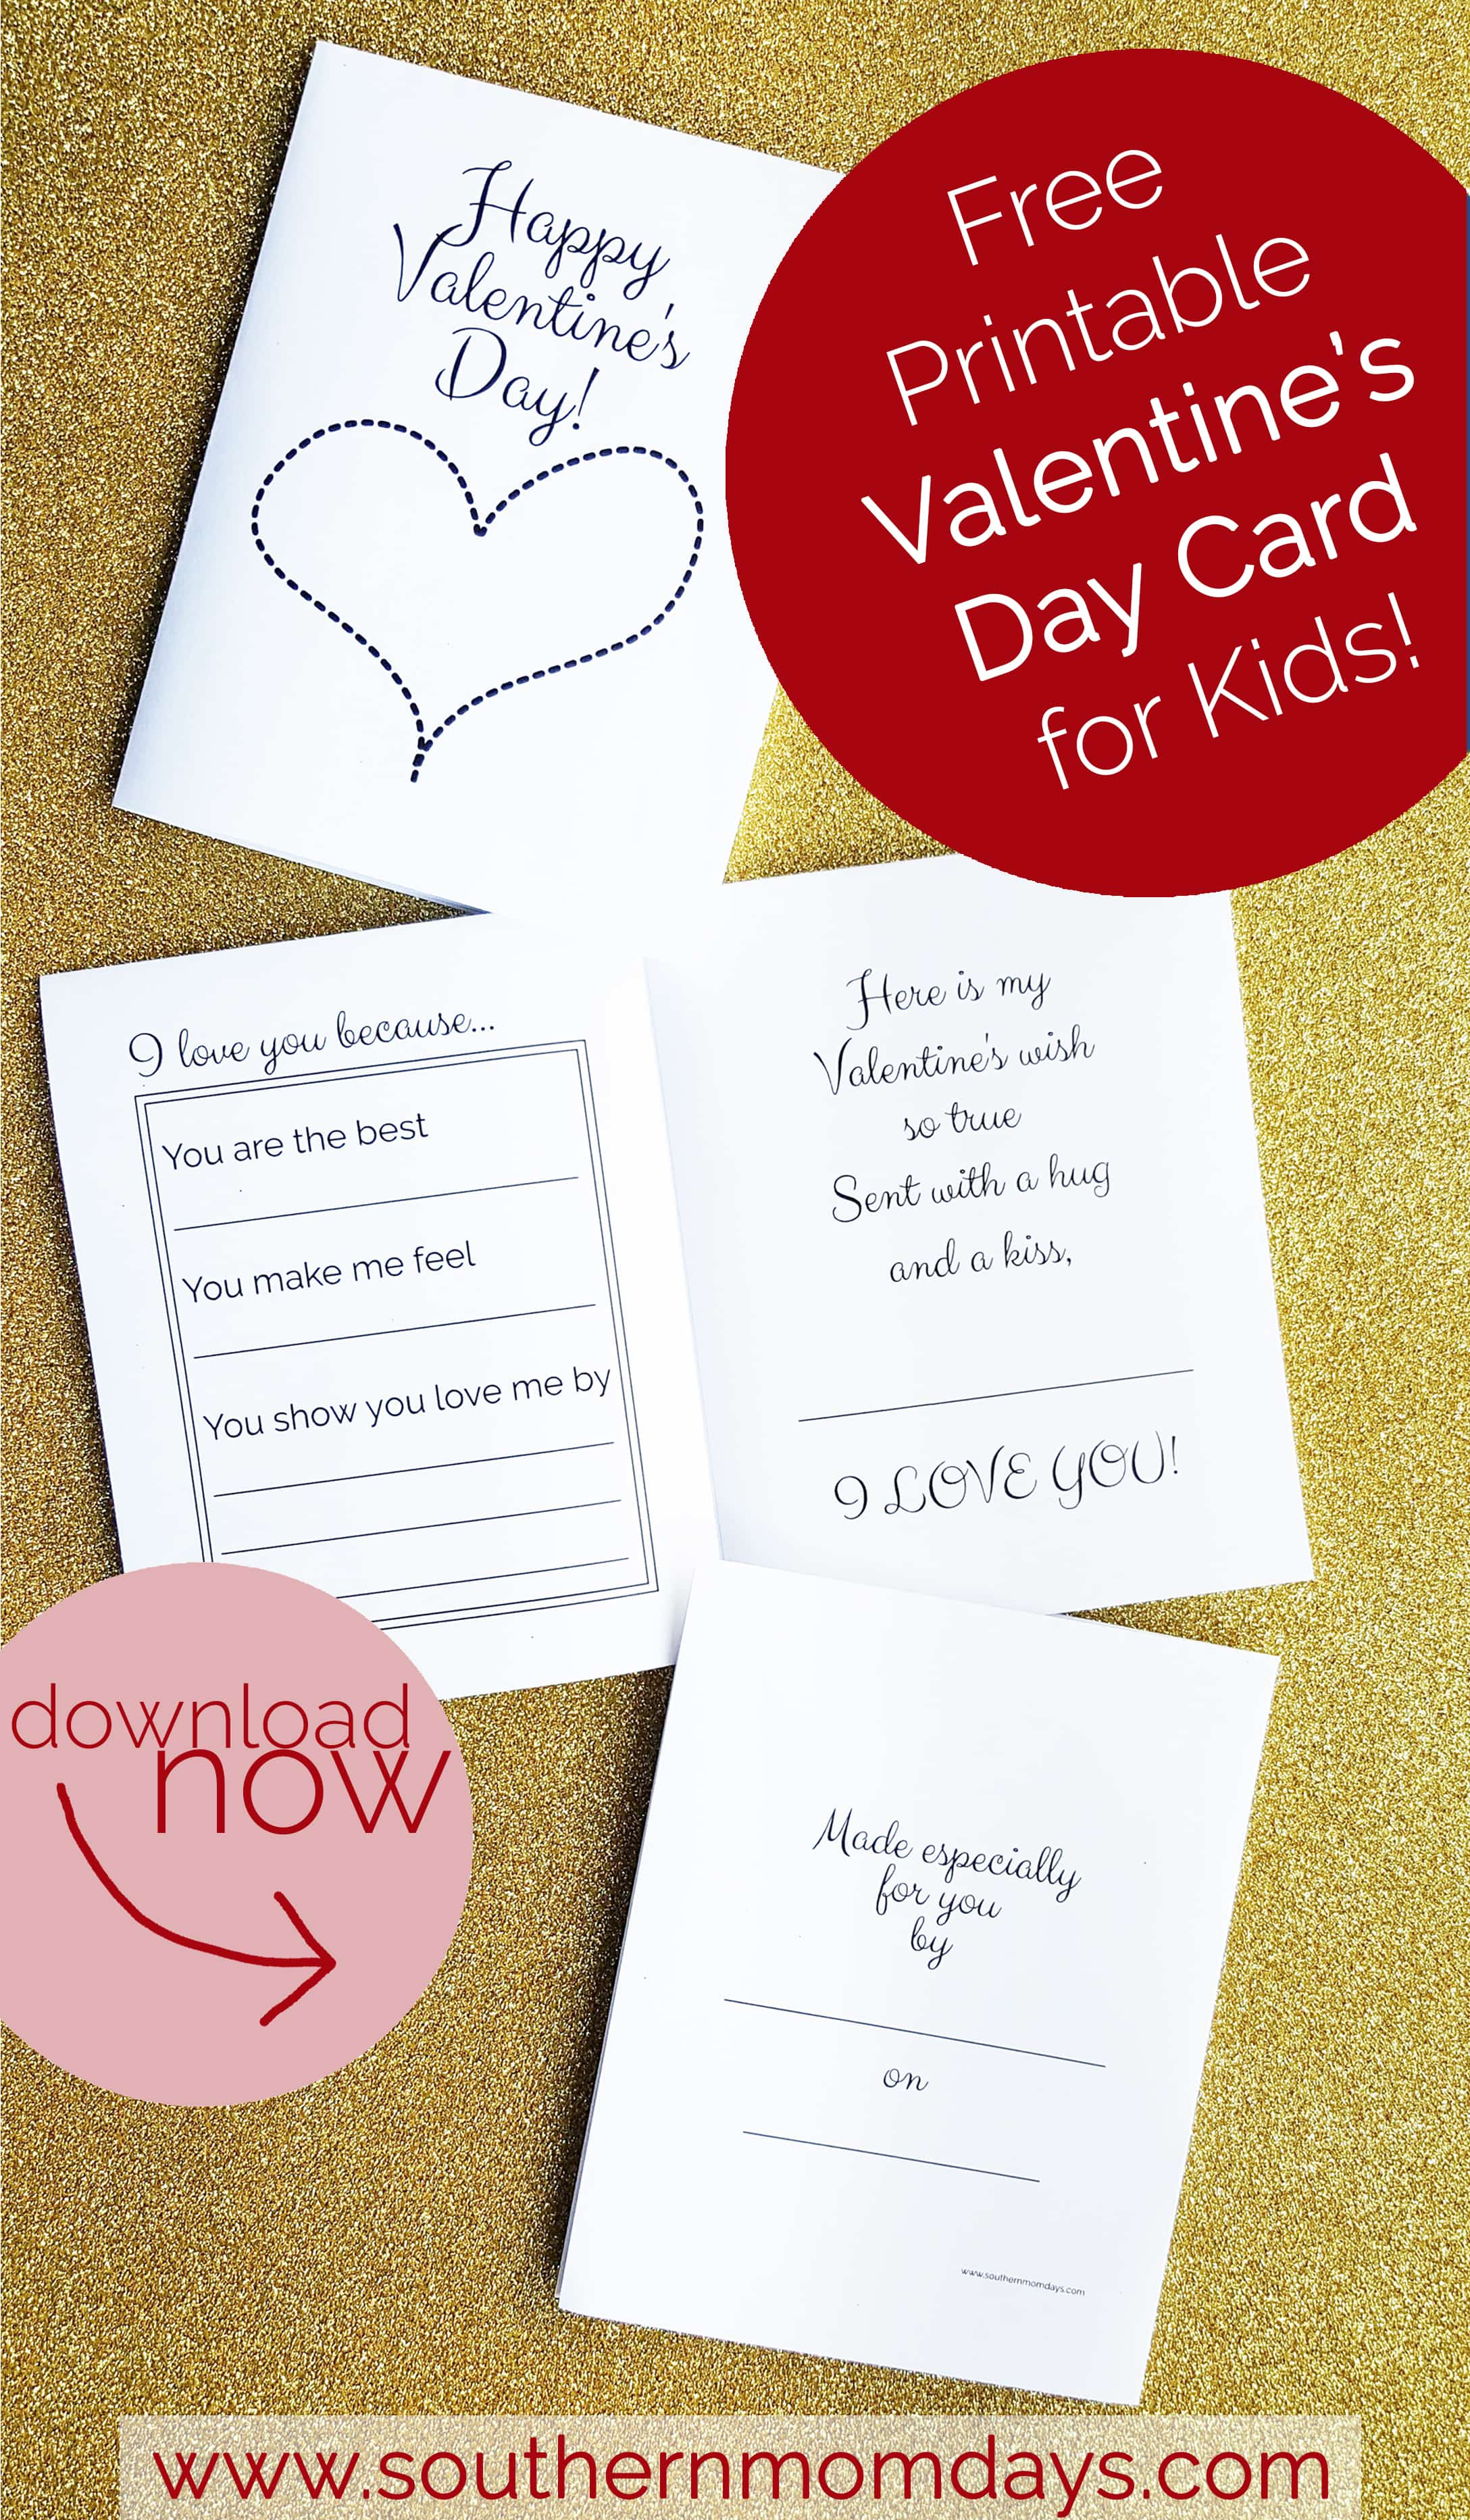 image regarding Printable Valentines Day Cards for Kids identify Totally free Printable: Valentines Working day Card for Young children - Southern Momdays